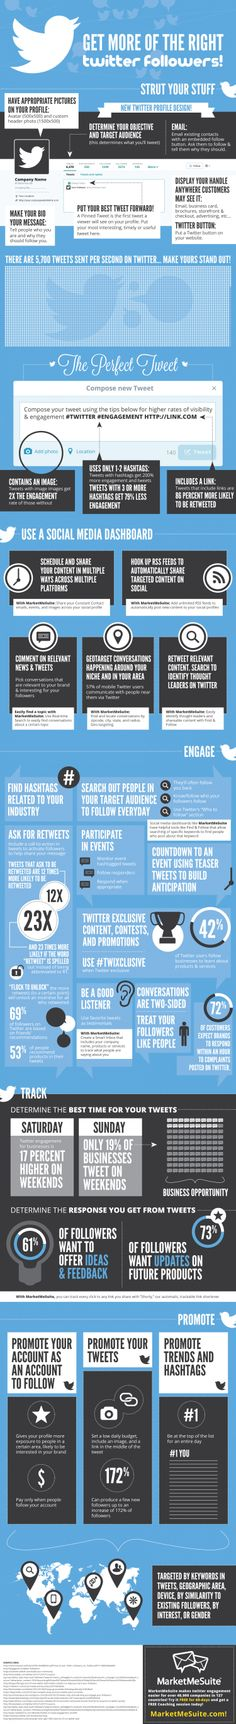 Get More of the Right Twitter Followers